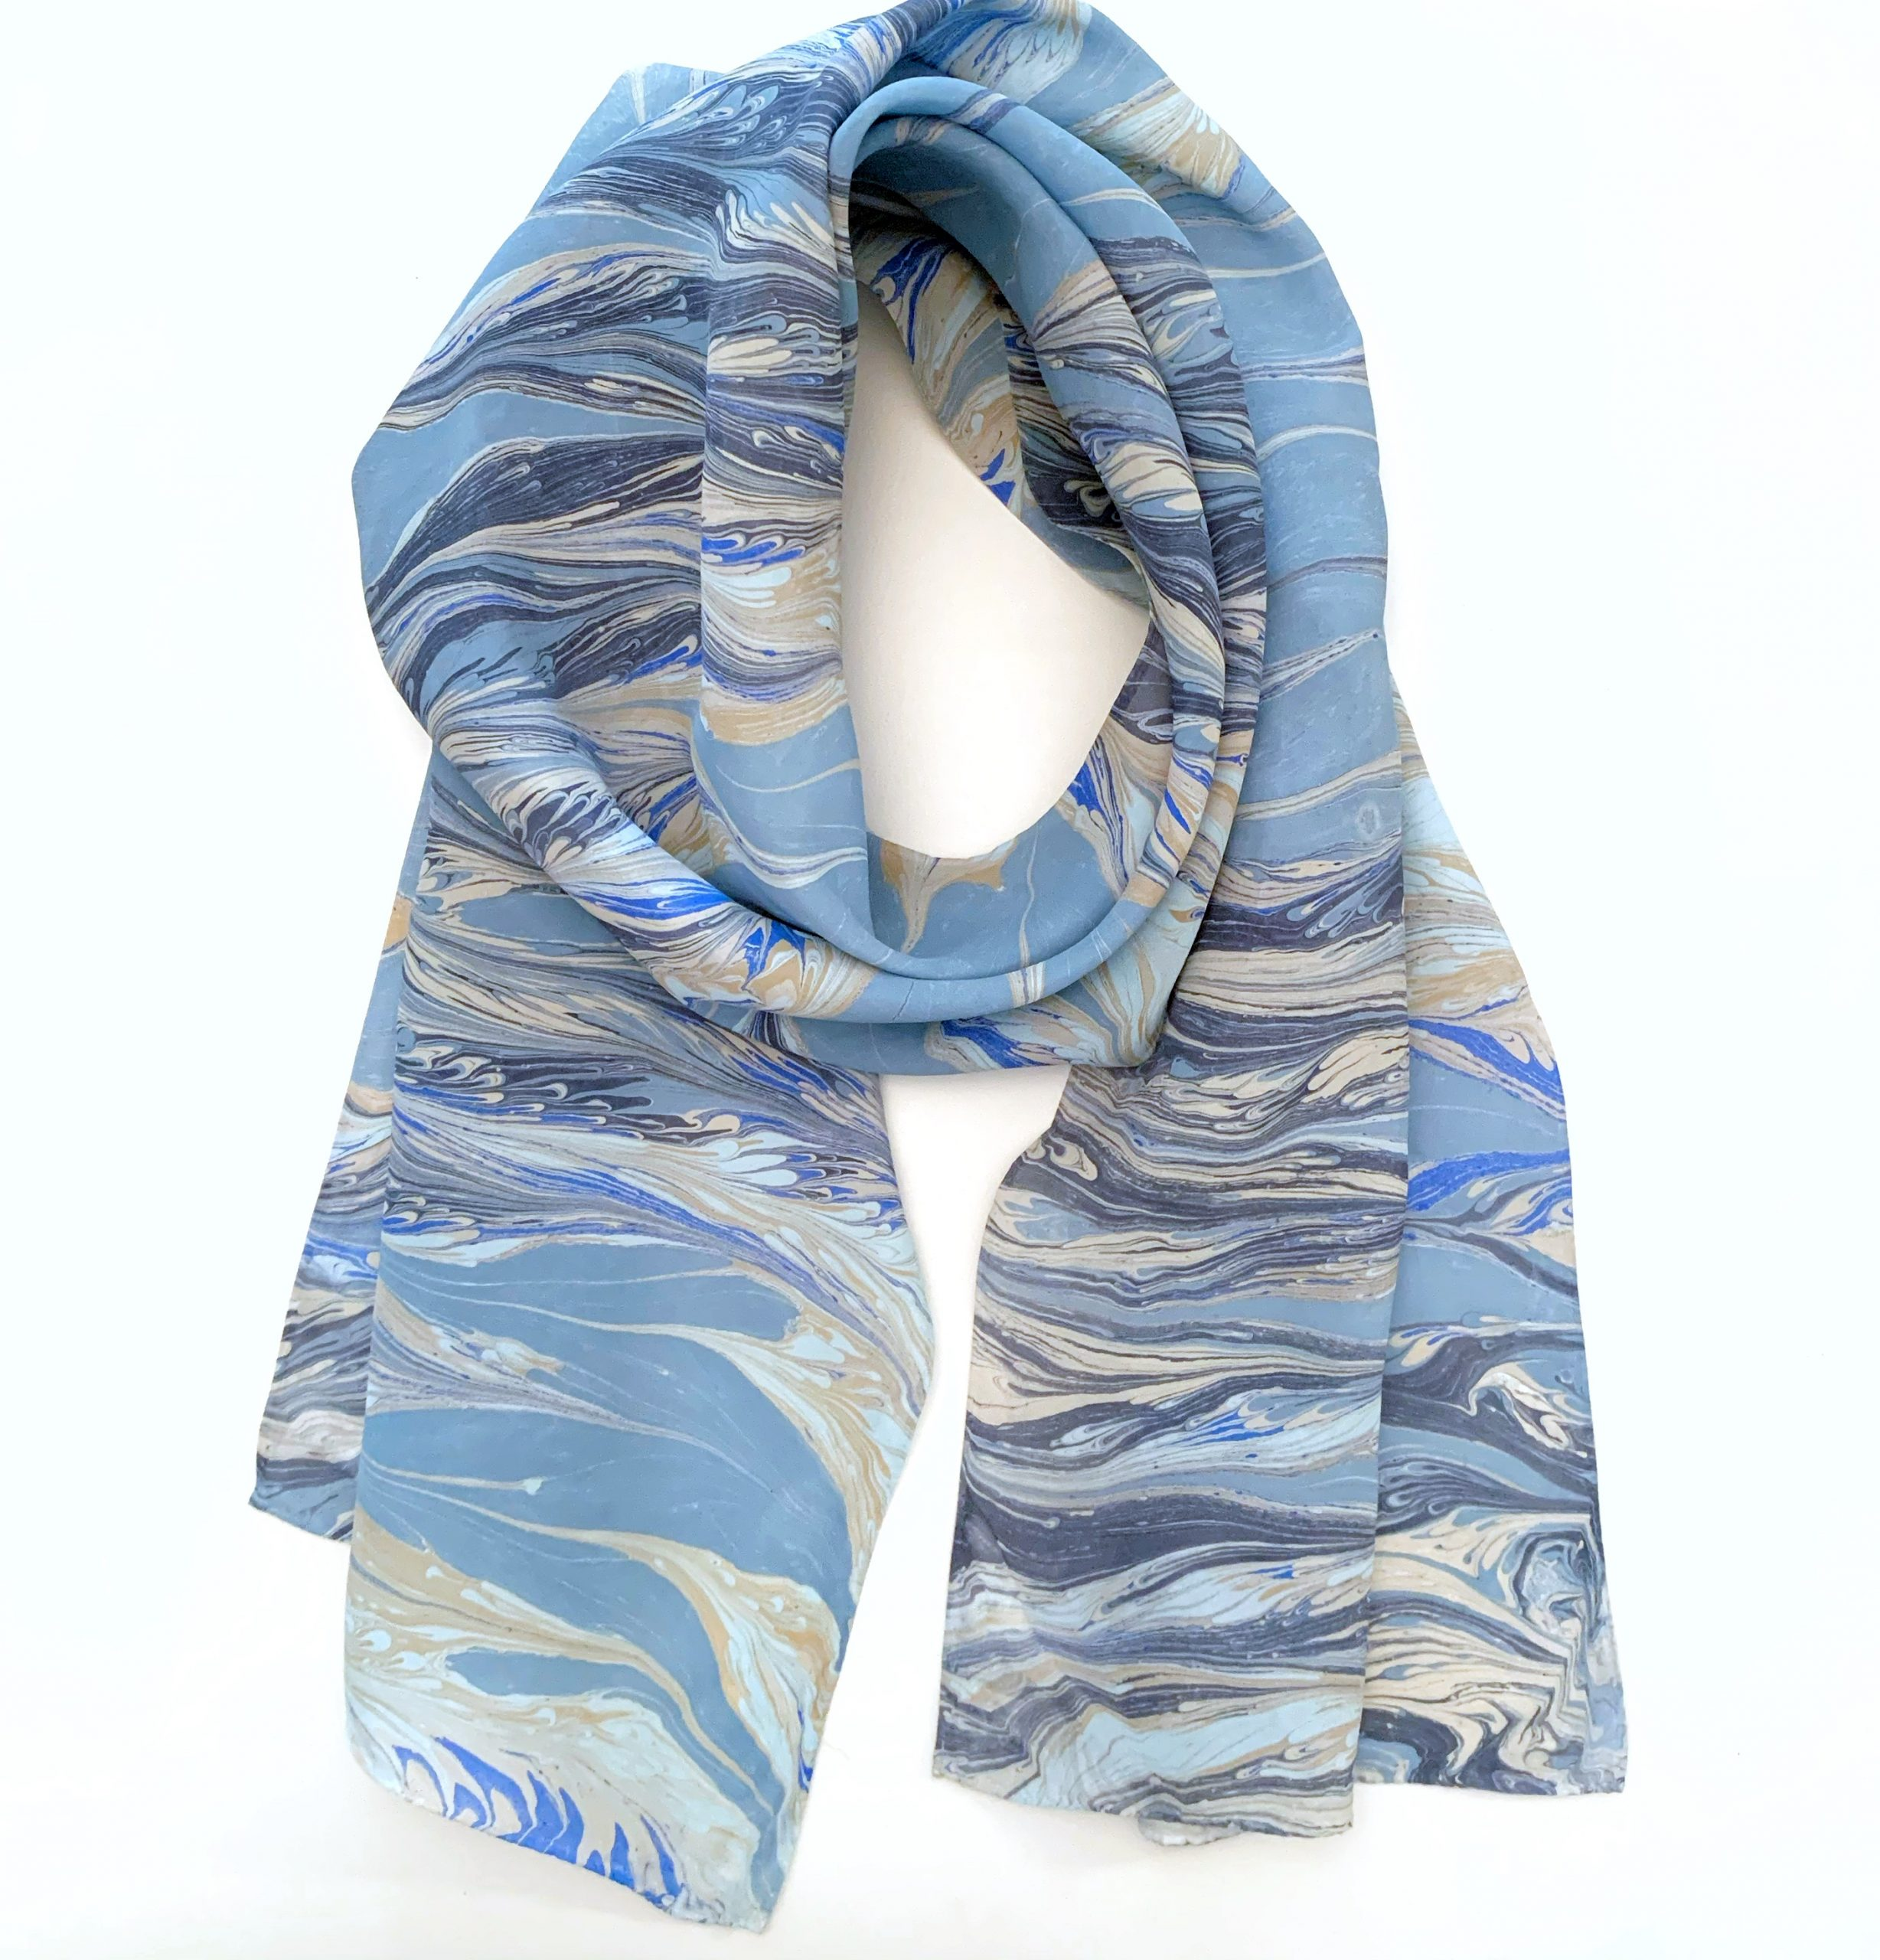 Denim Inspired SIlk Scarf